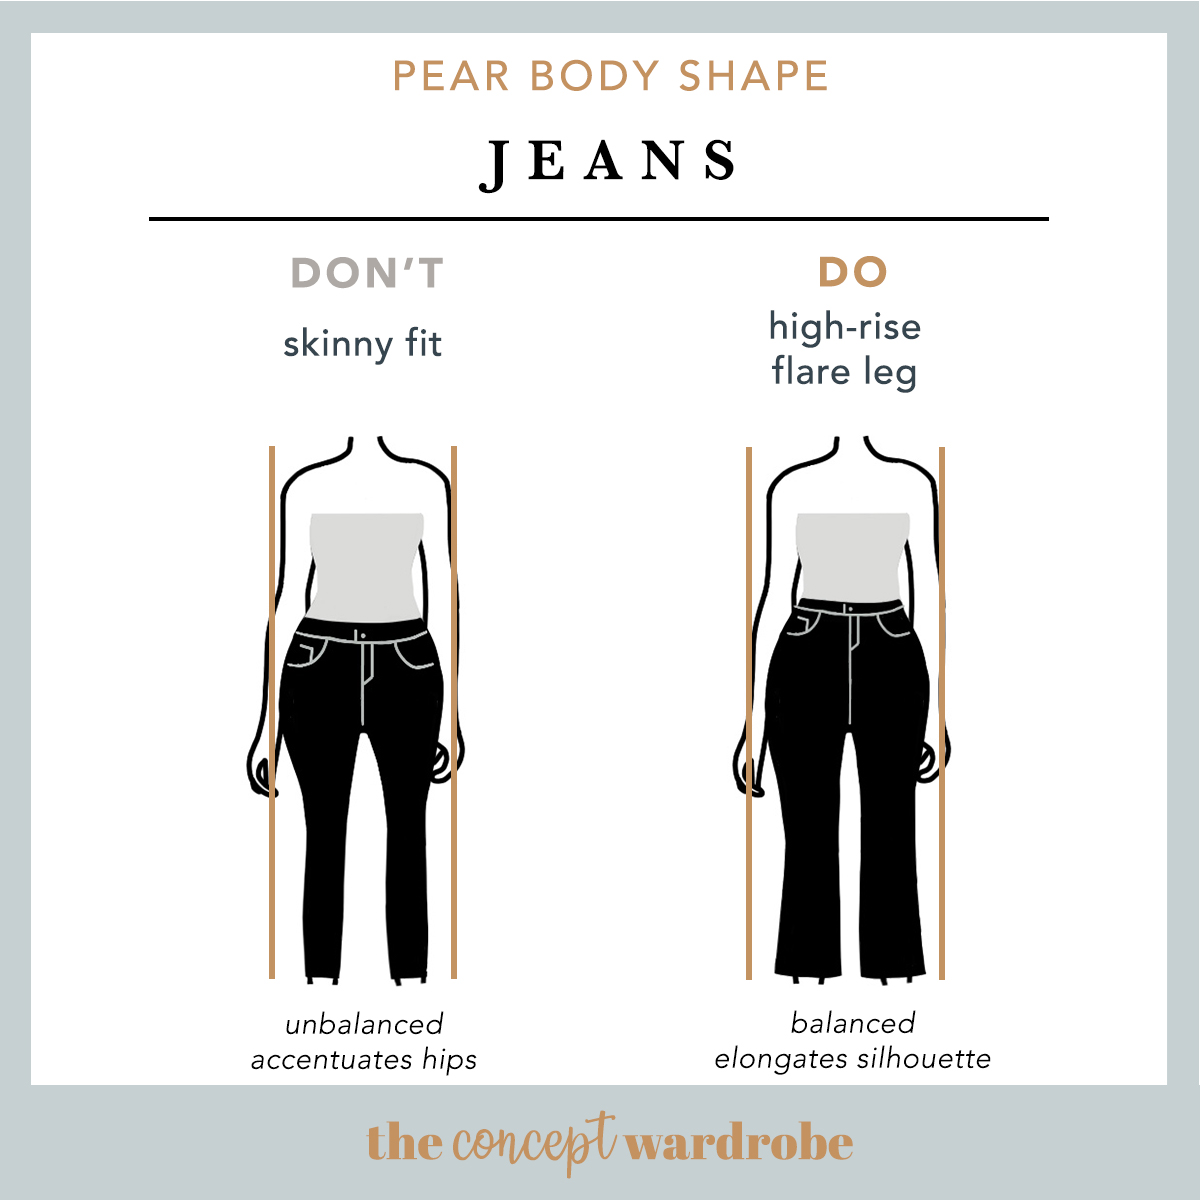 Pear Body Shape Jeans Do's and Don'ts - the concept wardrobe